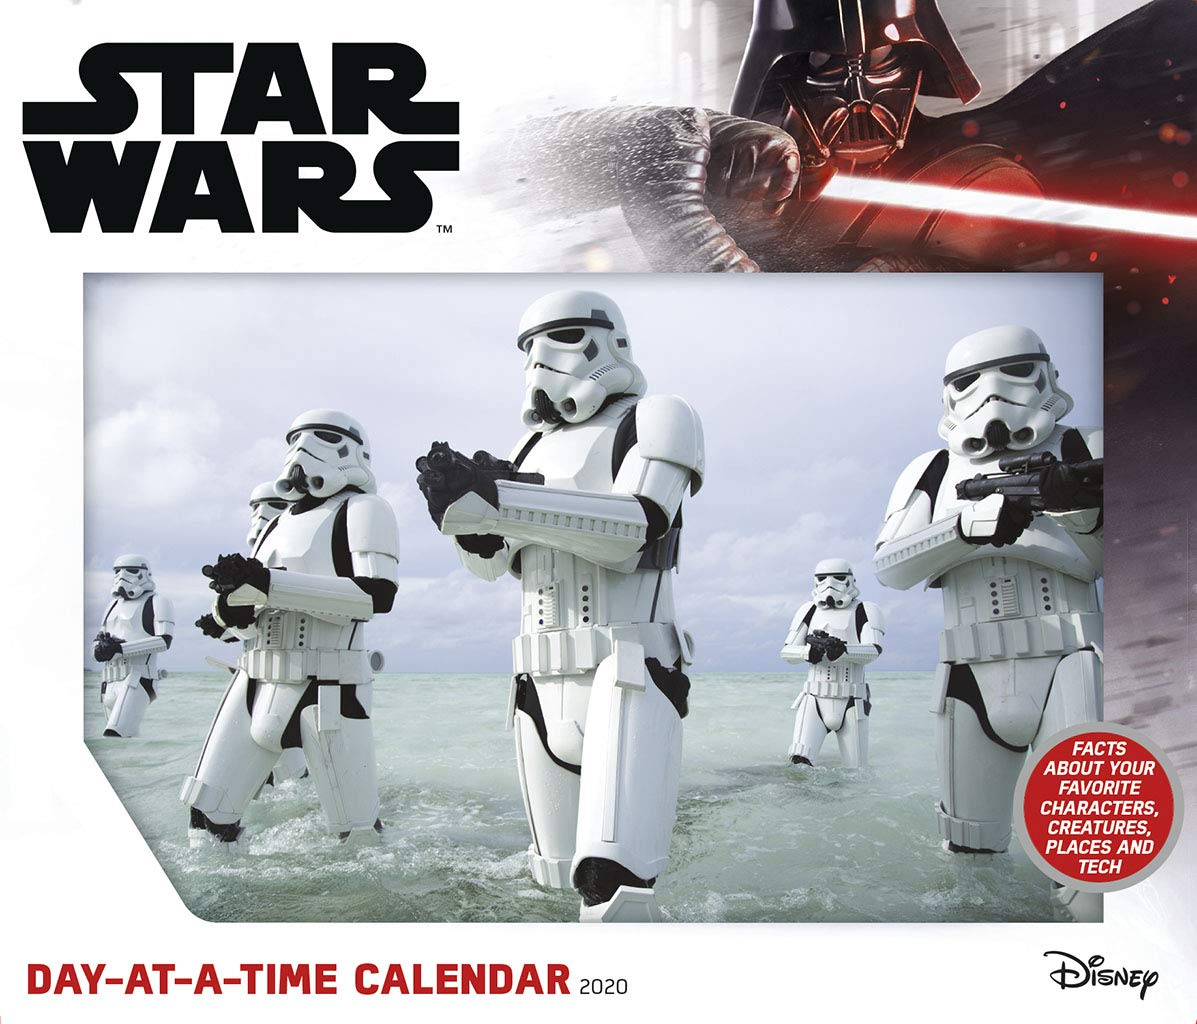 Star Wars Day-at-a-Time Calendar 2020 ...